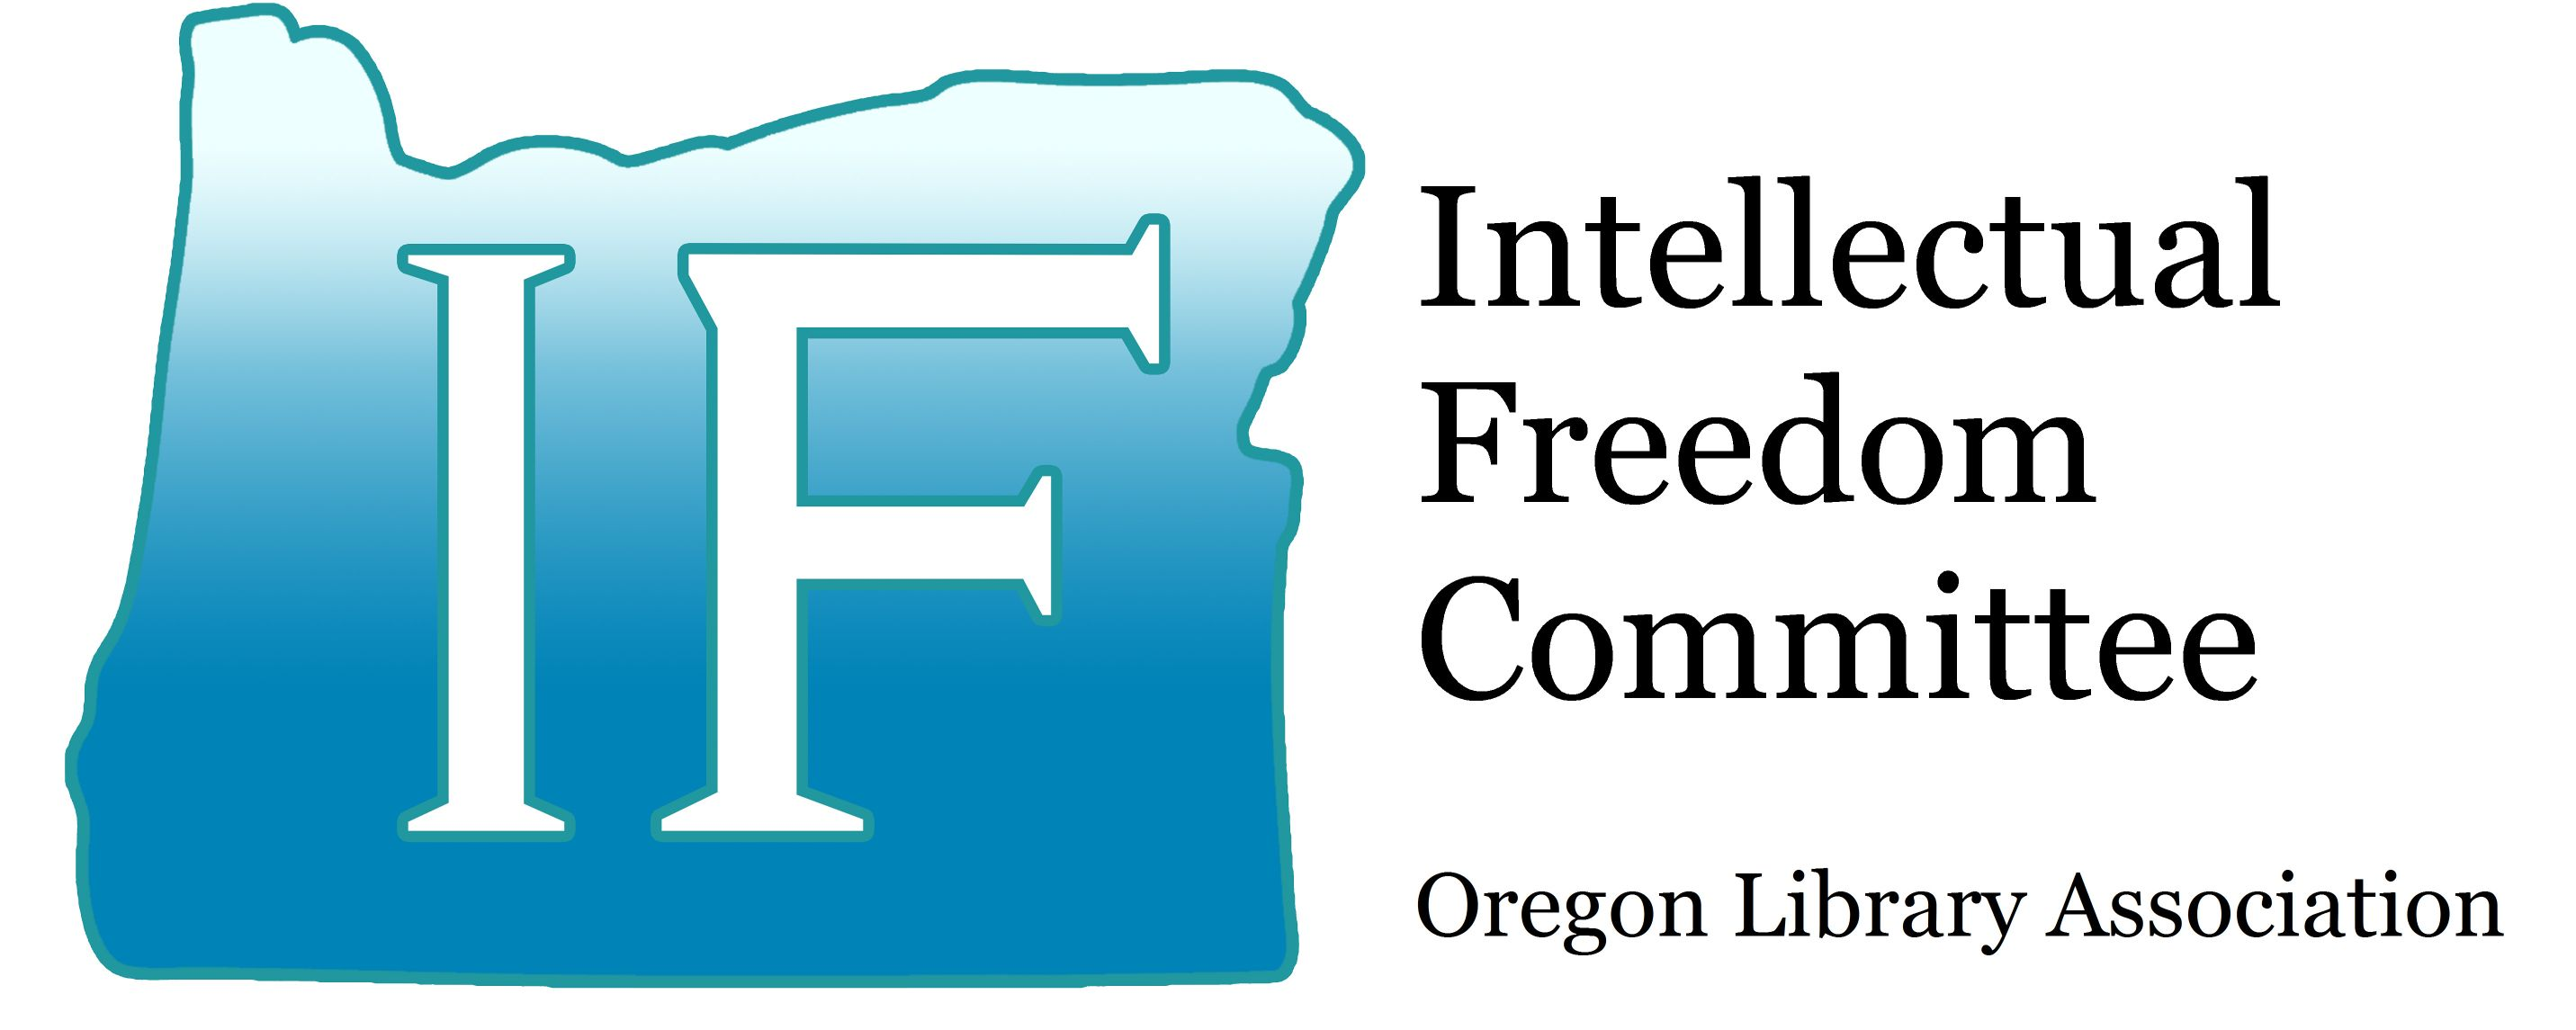 OLA Intellectual Freedom Committee logo